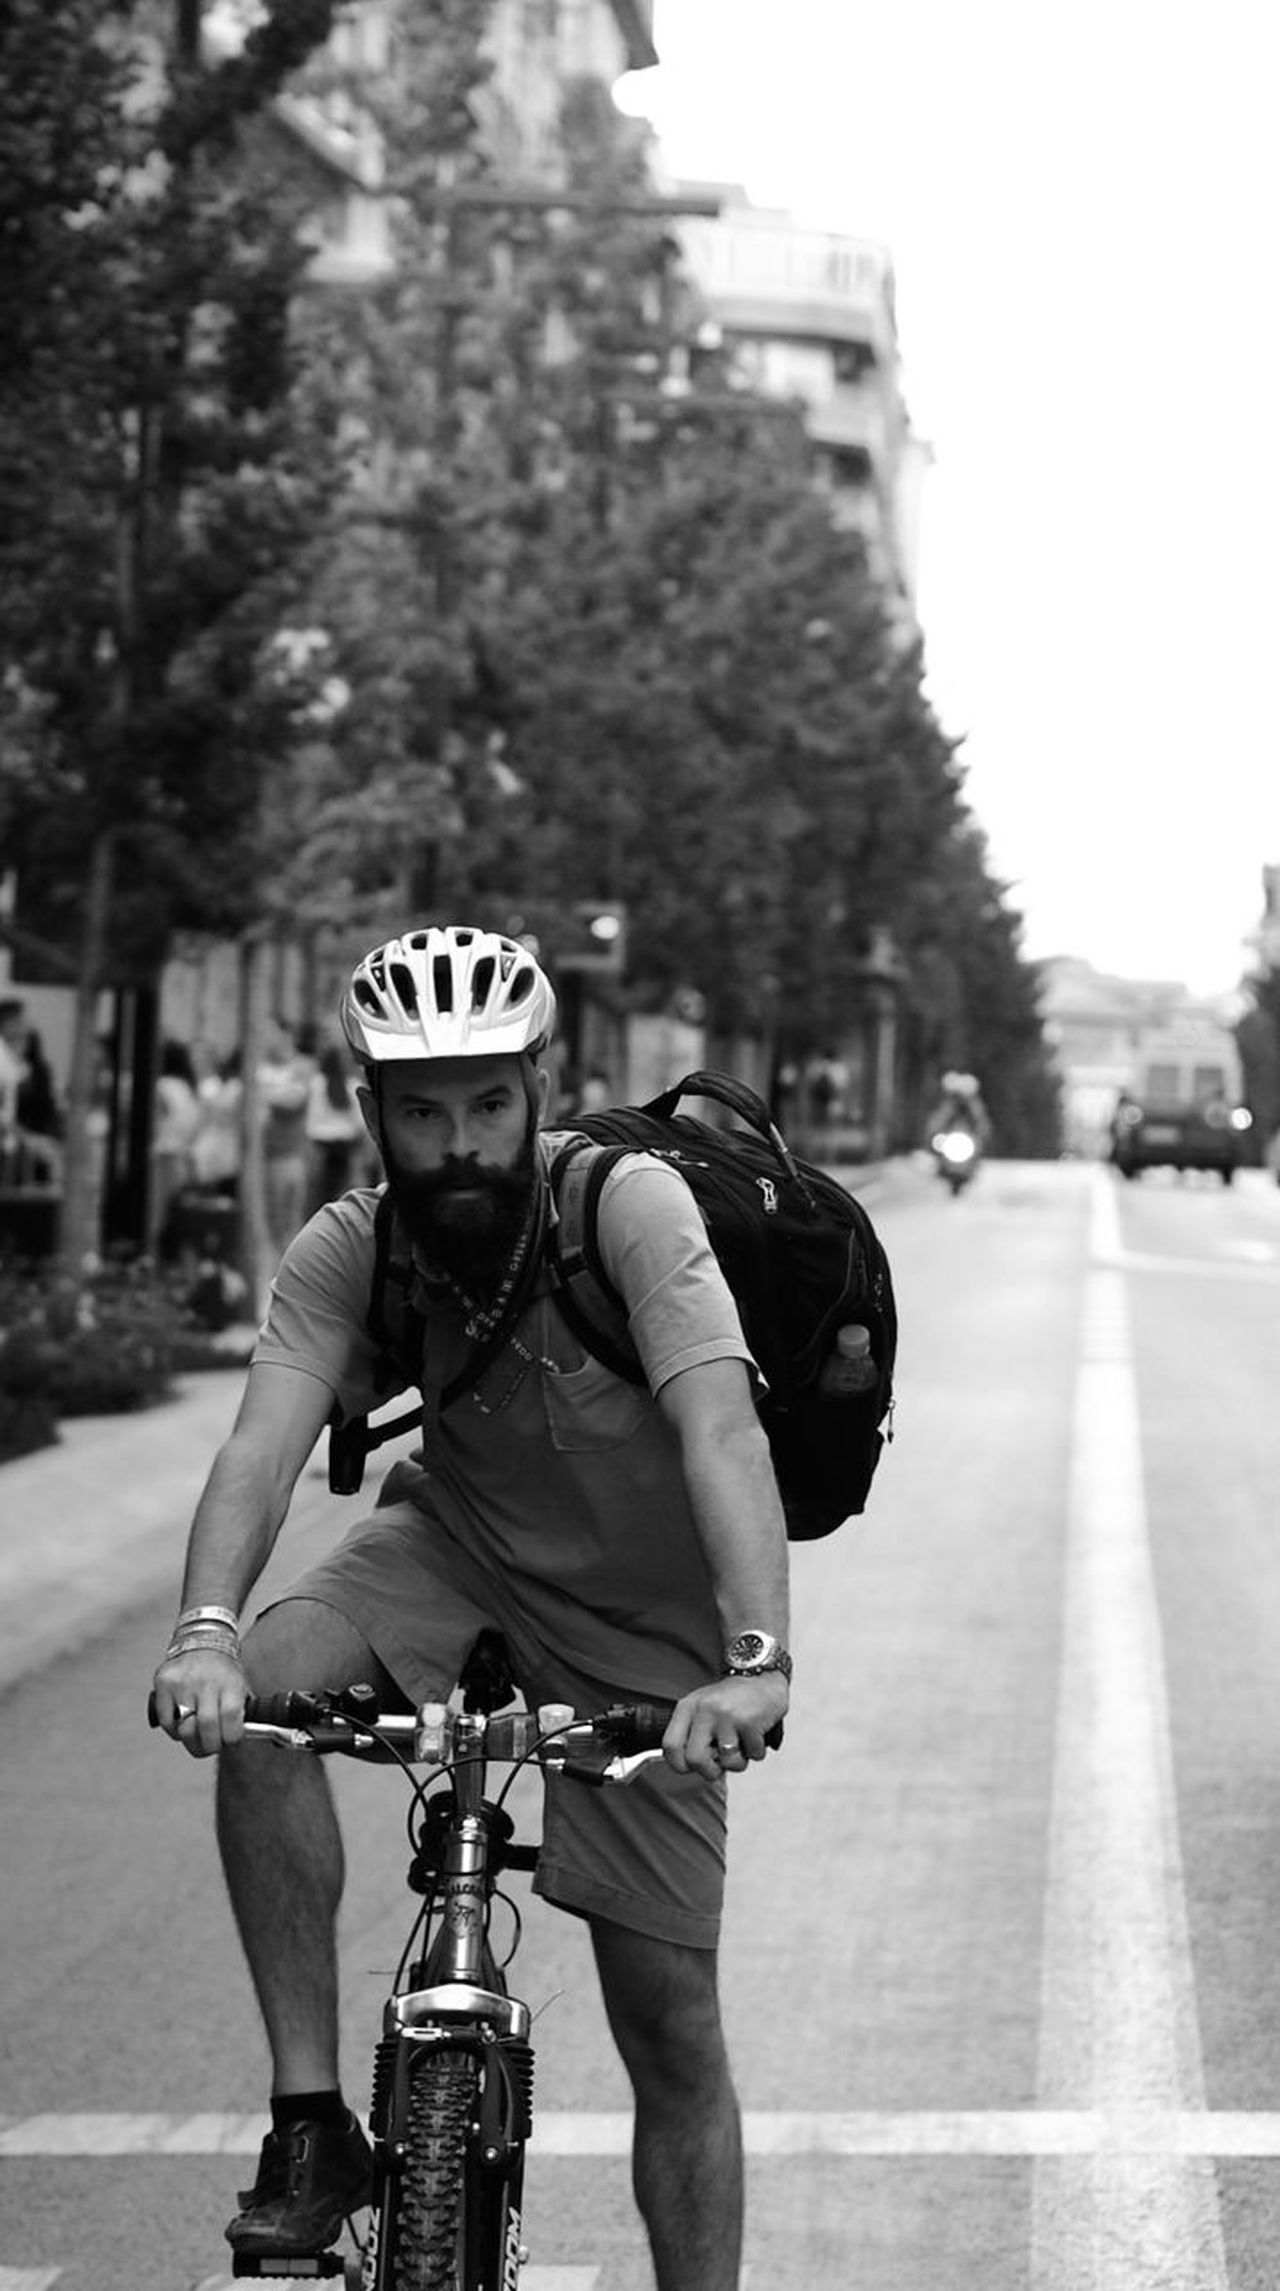 Biker Cyclist Street Biker Street Messenger black and white Street Photography